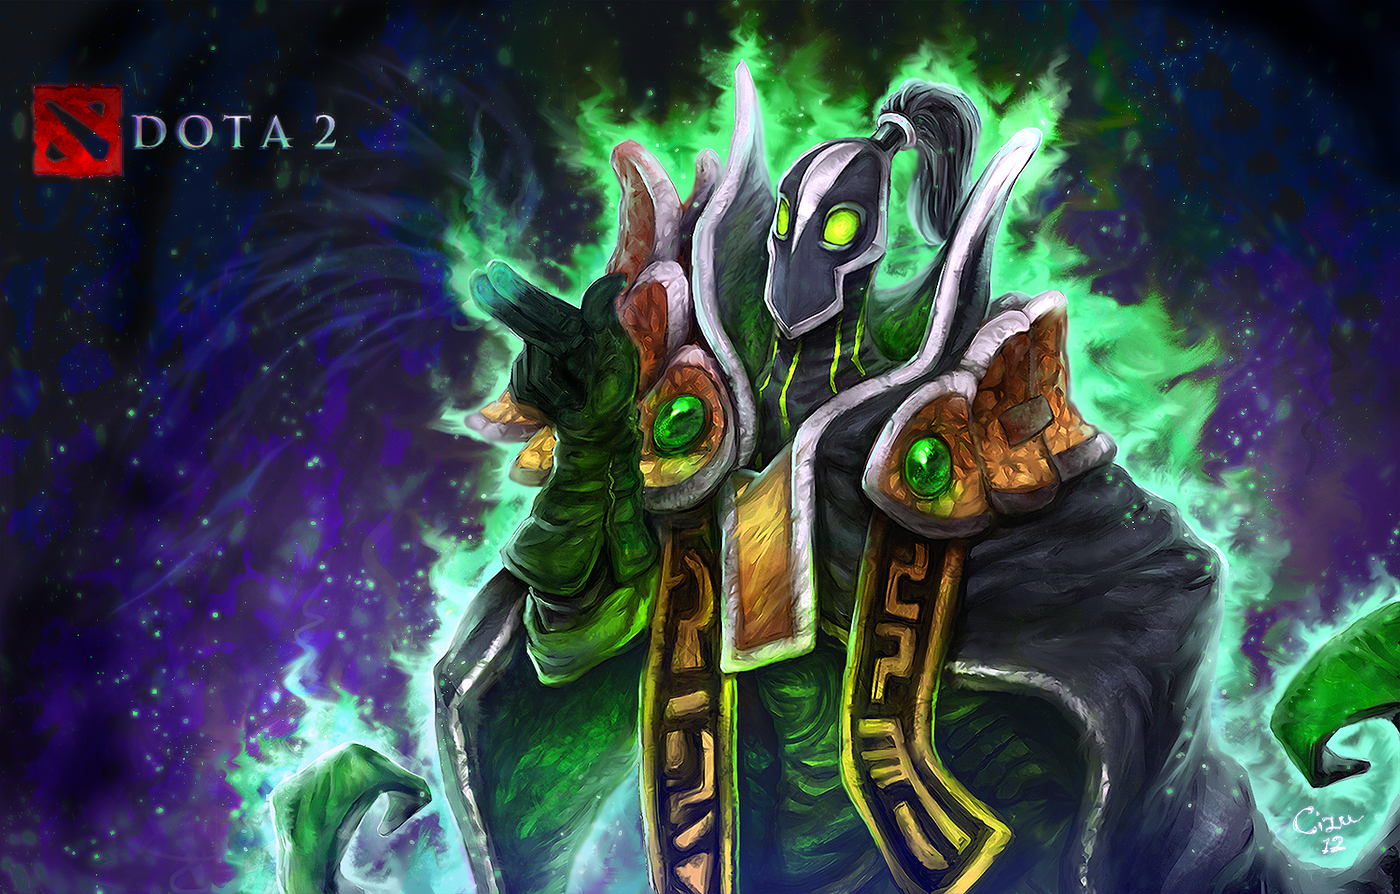 Wallpaper rubick by cizu